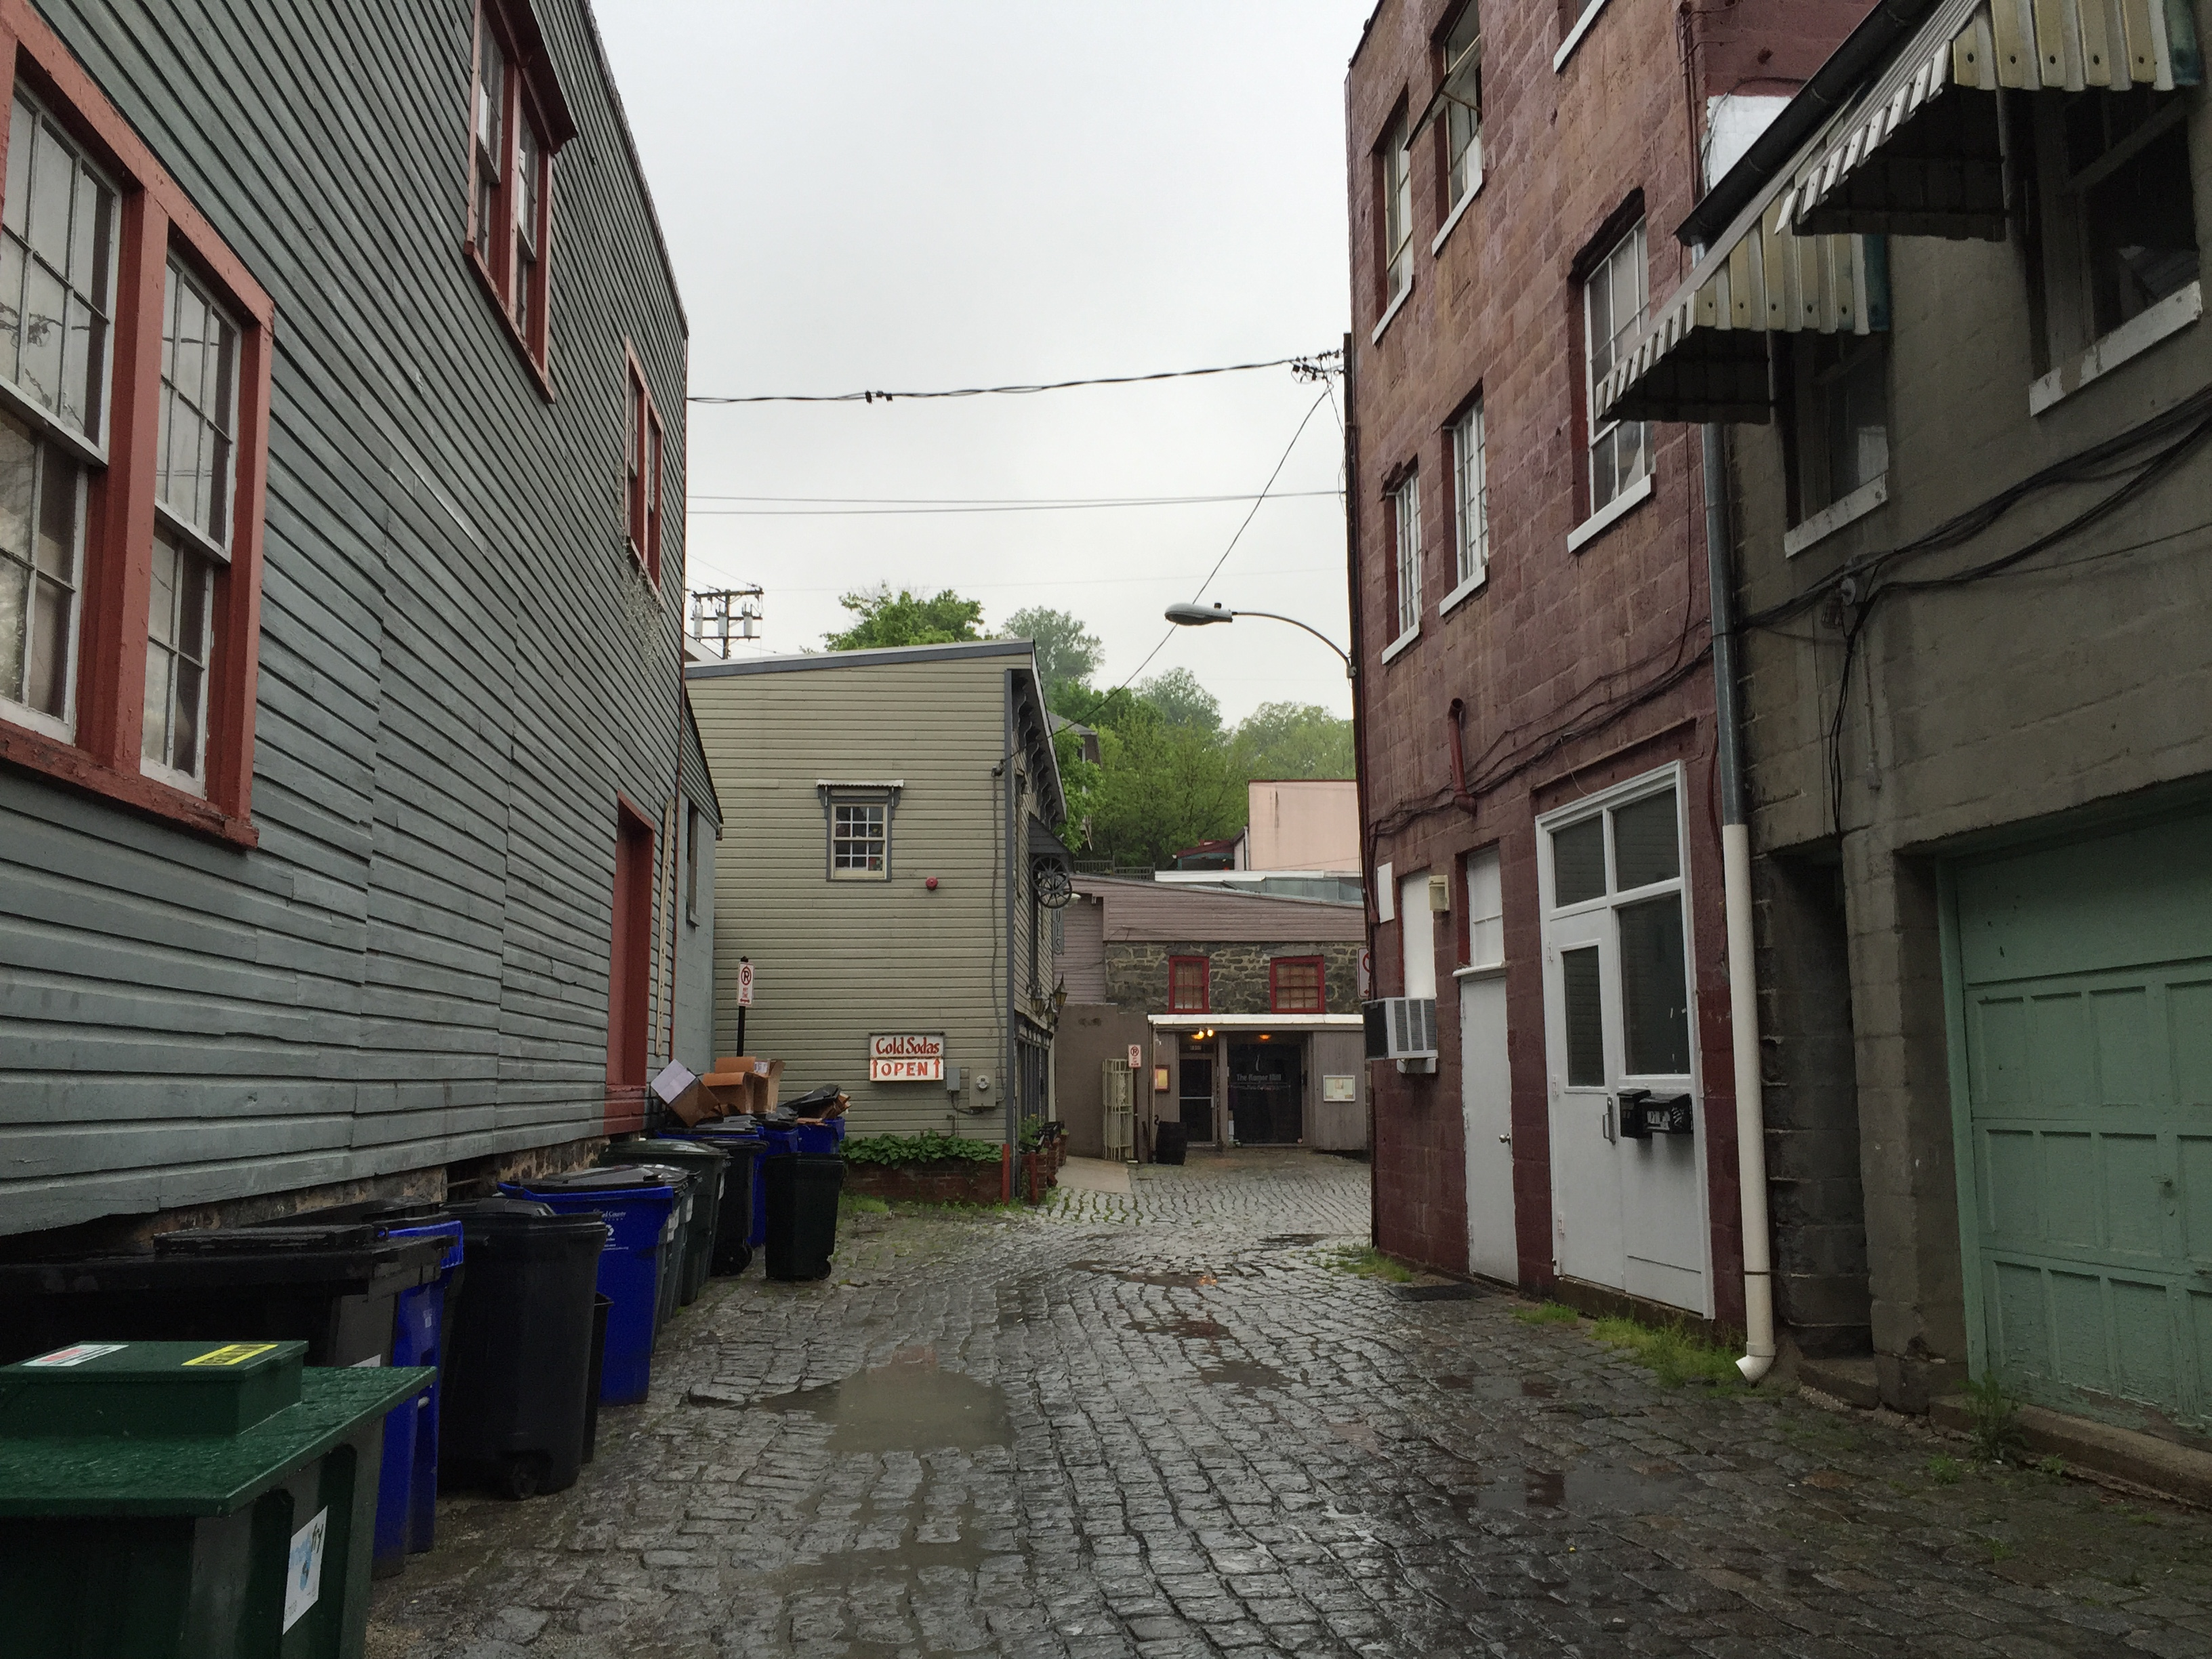 A gloomy look down an alley, one side lined with an assortment of plastic garbage cans and the other has a green garage door and a white doorway